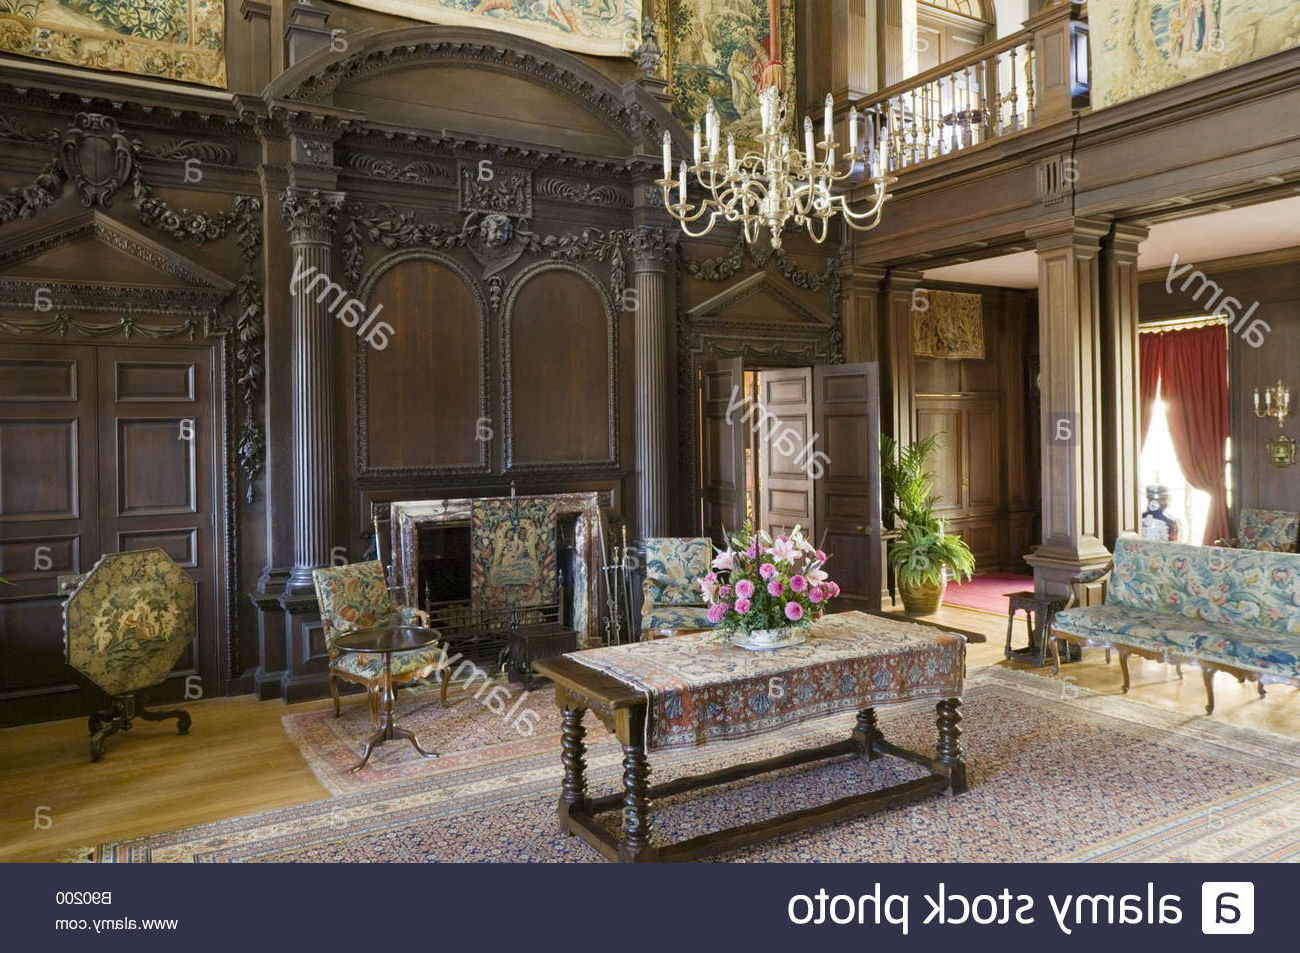 Poynter 3 Piece Drop Leaf Dining Sets Within Fashionable 1903 5 Stock Photos & 1903 5 Stock Images – Alamy (View 21 of 25)